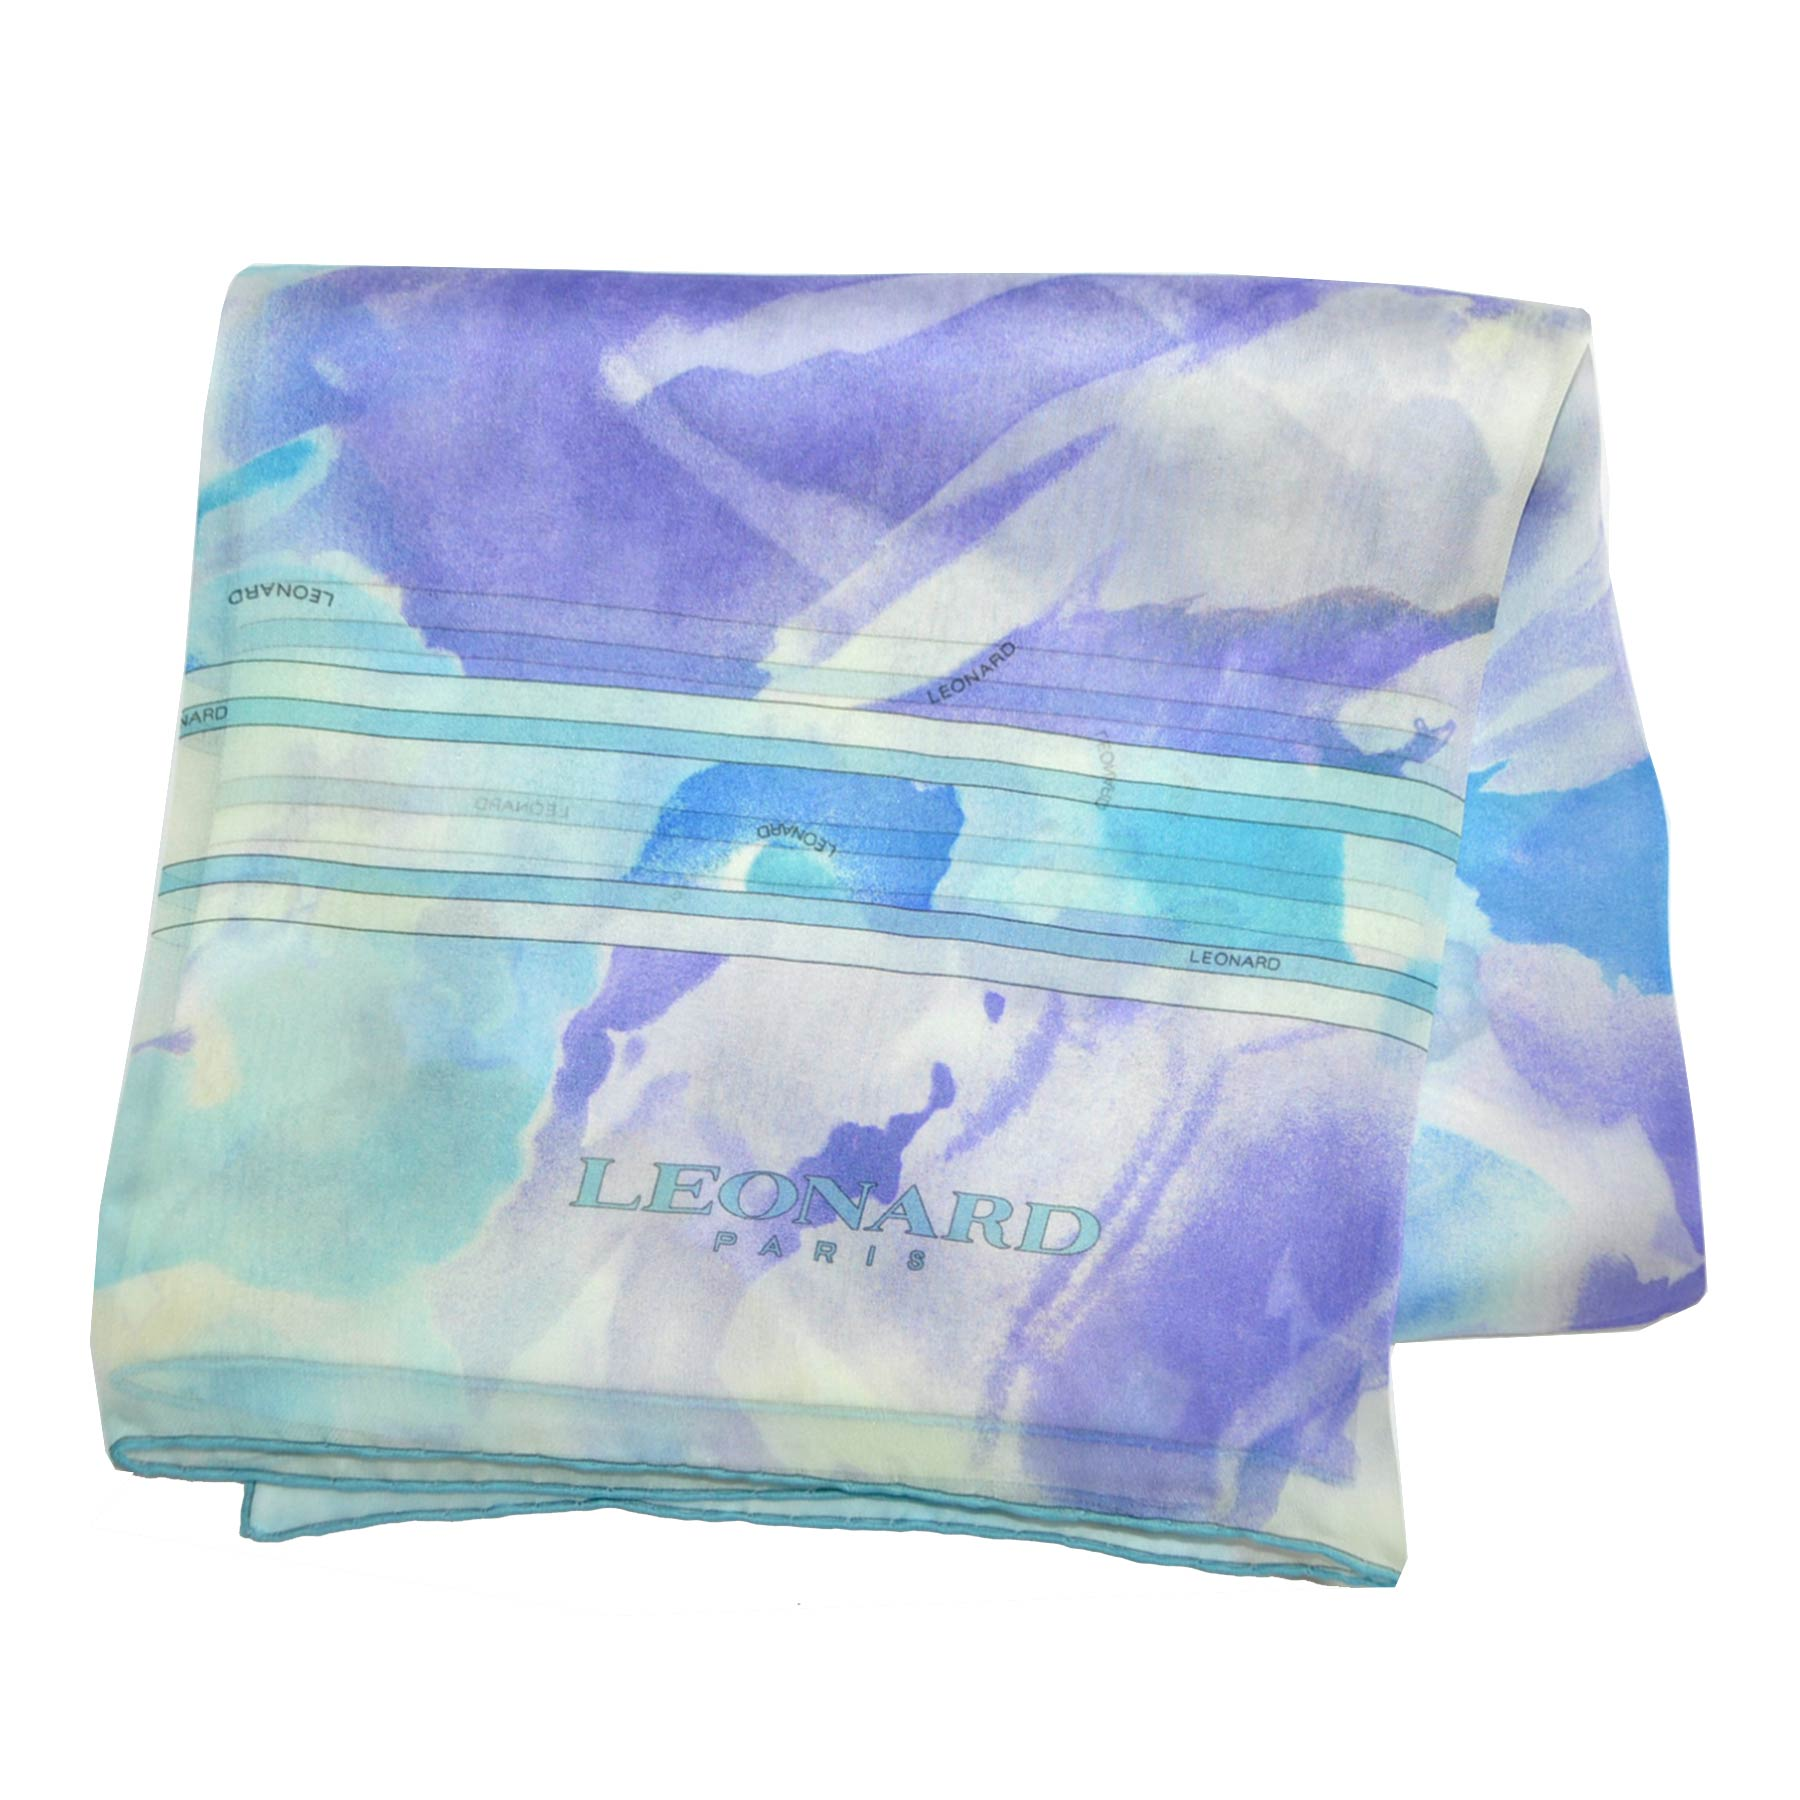 Leonard Paris Scarf Lilac Gray Aqua Watercolors Chiffon Silk Shawl